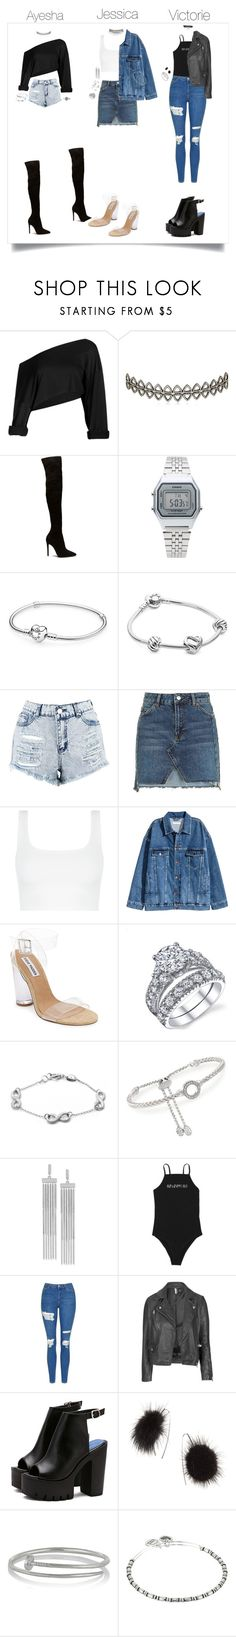 """Denim + Black Y White Sisters"" by psannahia ❤ liked on Polyvore featuring Assya London, Casio, Pandora, Boohoo, Topshop, Steve Madden, Charles Garnier, BCBGeneration, Kenneth Jay Lane and Alex and Ani"